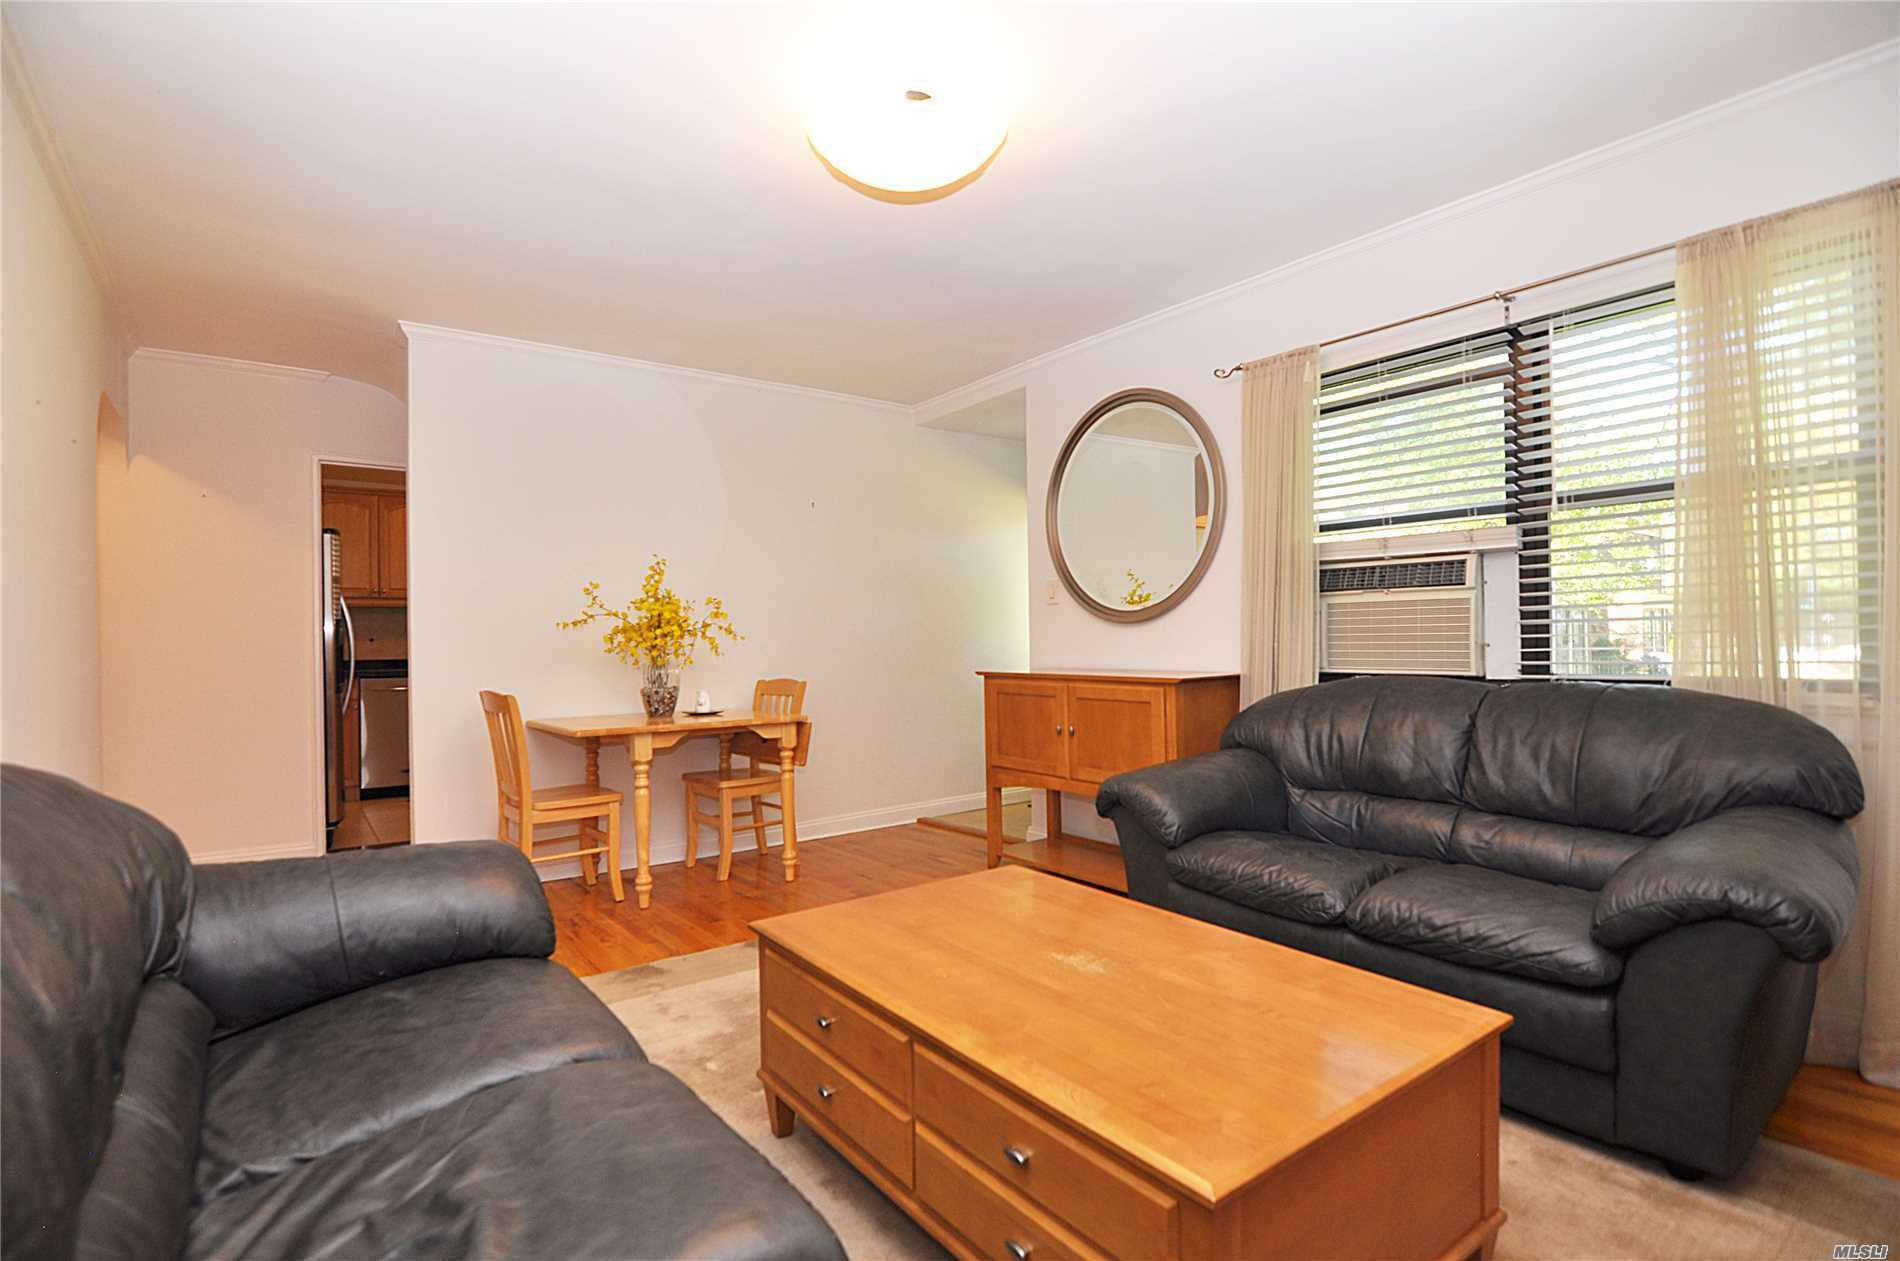 Lower Unit, Set Back In Deep Courtyard, Updated Kitchen (Ss Appliances, Granite), Sparkling Hardwood Floor Throughout, Brand New Storm And Front Doors/Windows.Private Entrance, Bbq Ok, Parking Inc, Sd26. Qm5, Qm8, Q88, Q27, Lirr, Near Parks, Shops, School, Restaurants, 24Hr Security, Pet Friendly, Rent Ok, No Flip Tax, Maintenance Includes All Except Electricity, Private Entrance, Washer/Dryer, Storage Available, 5 Laundry On Premise, 100% Equity Coop, Maintenance Tax Deductible, Lots Of Closets,